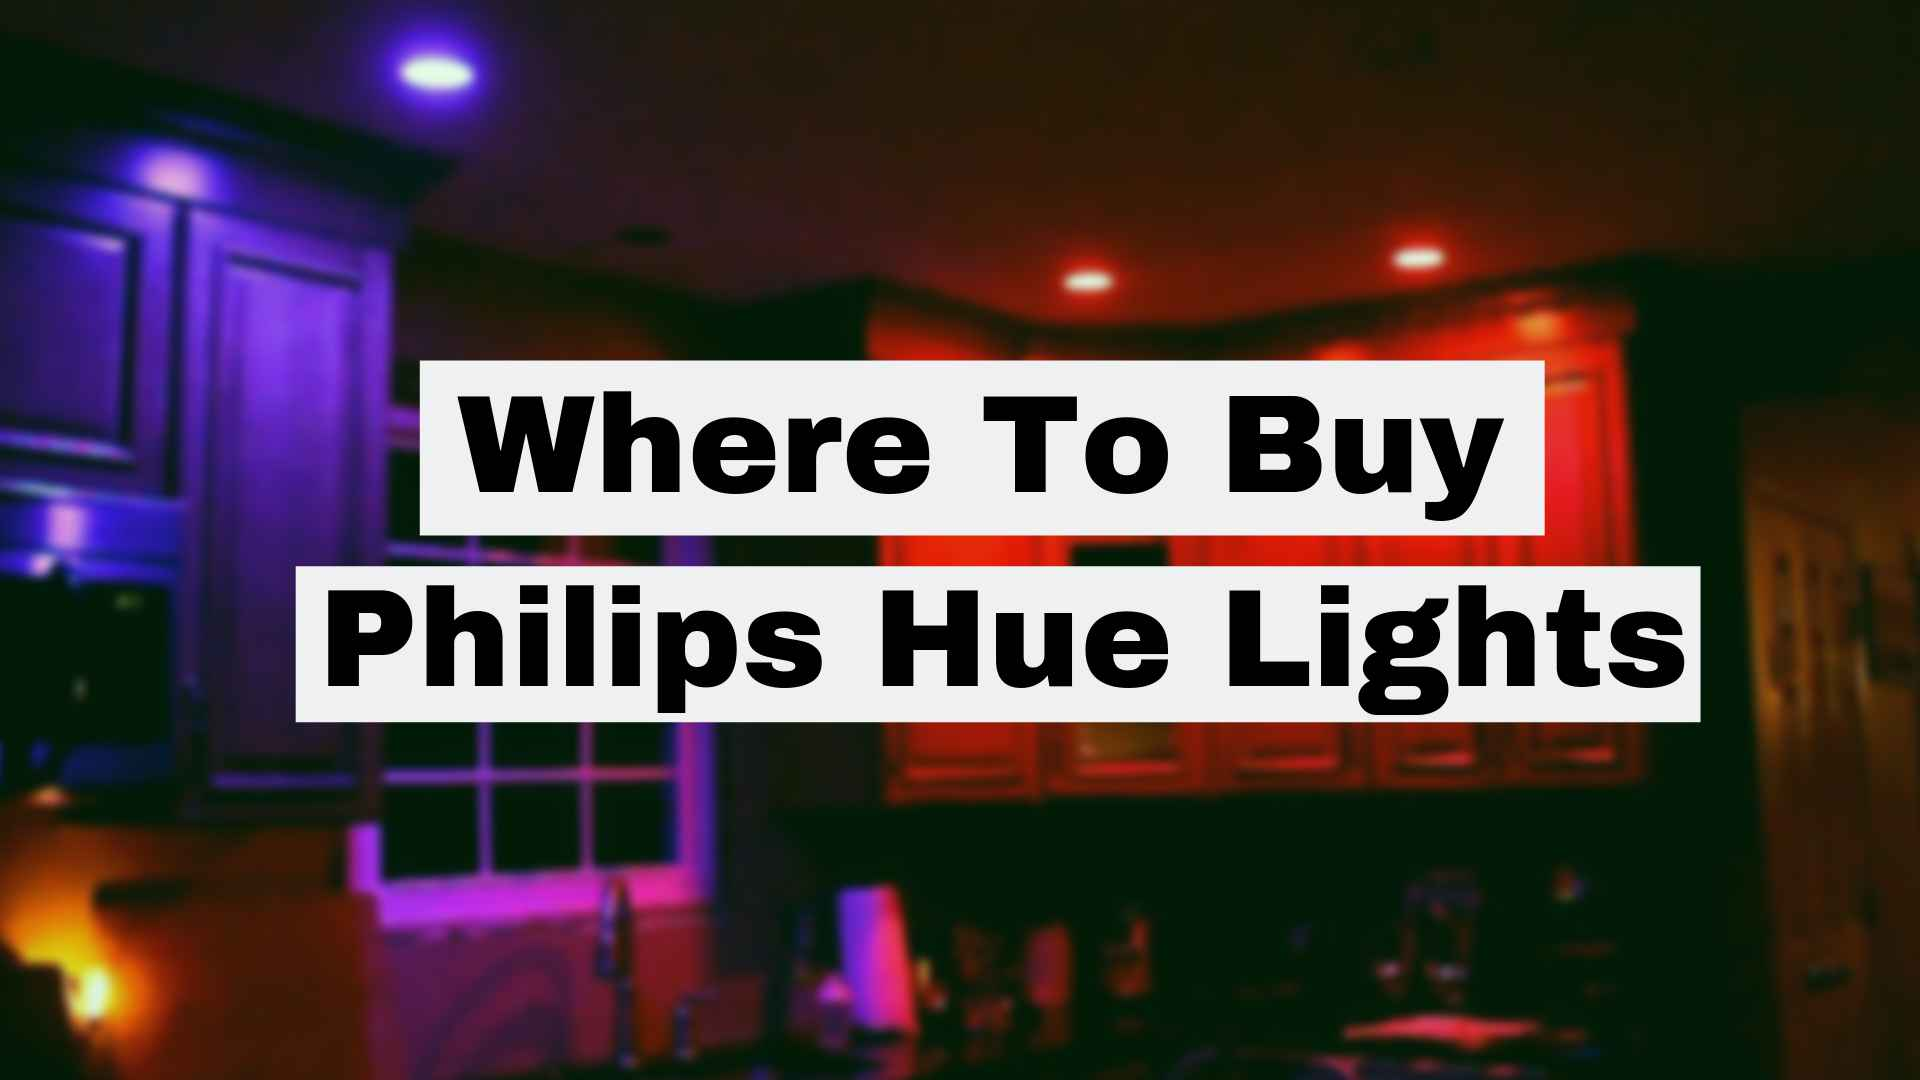 Where To Buy Philips Hue Lights: Deals & Discounts